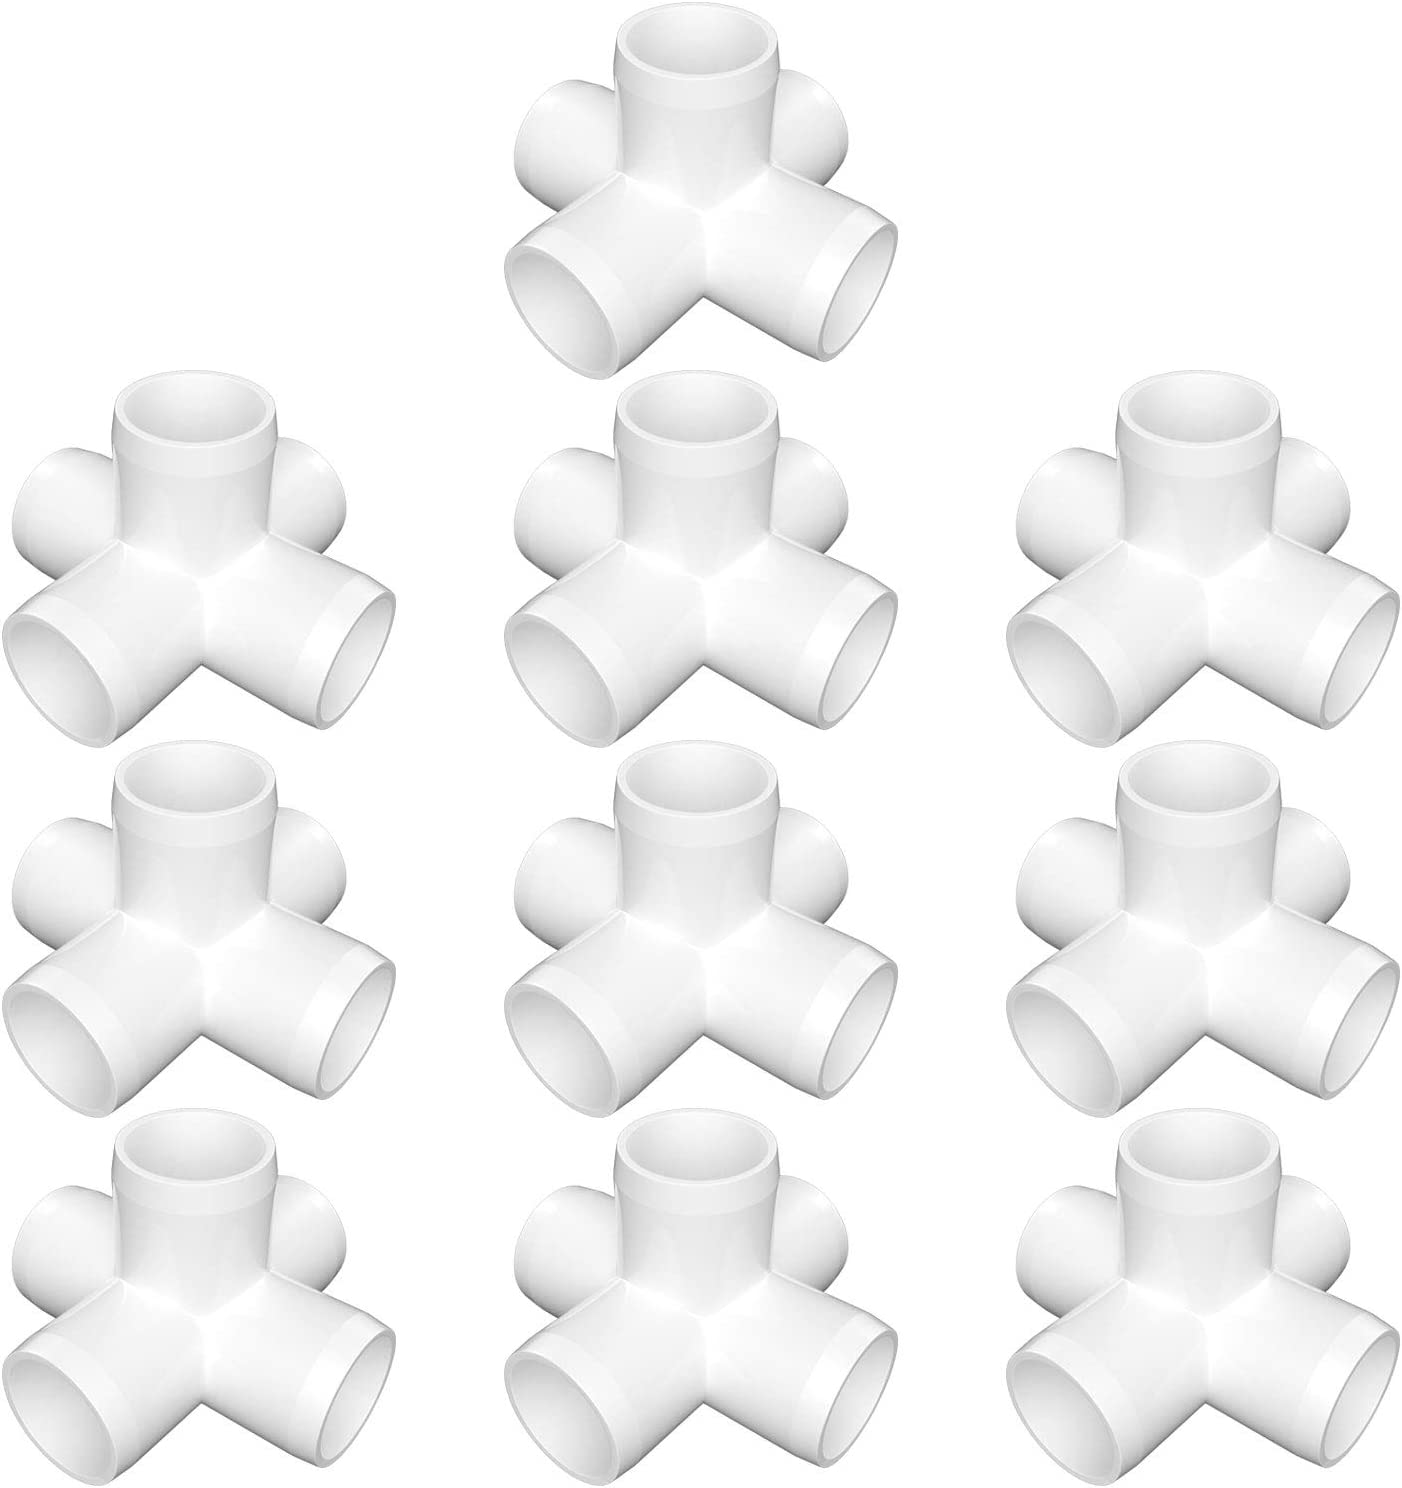 "letsFix PVC Elbow Fittings 3/4"", 3-Way/4-Way/5-Way/Tee/Cross/45 Degree Elbow/90 Degree Elbow for SCH40 3/4"" PVC Pipe - Build Heavy Duty PVC Furniture, Plumbing Projects Available, White [Pack of 10]"